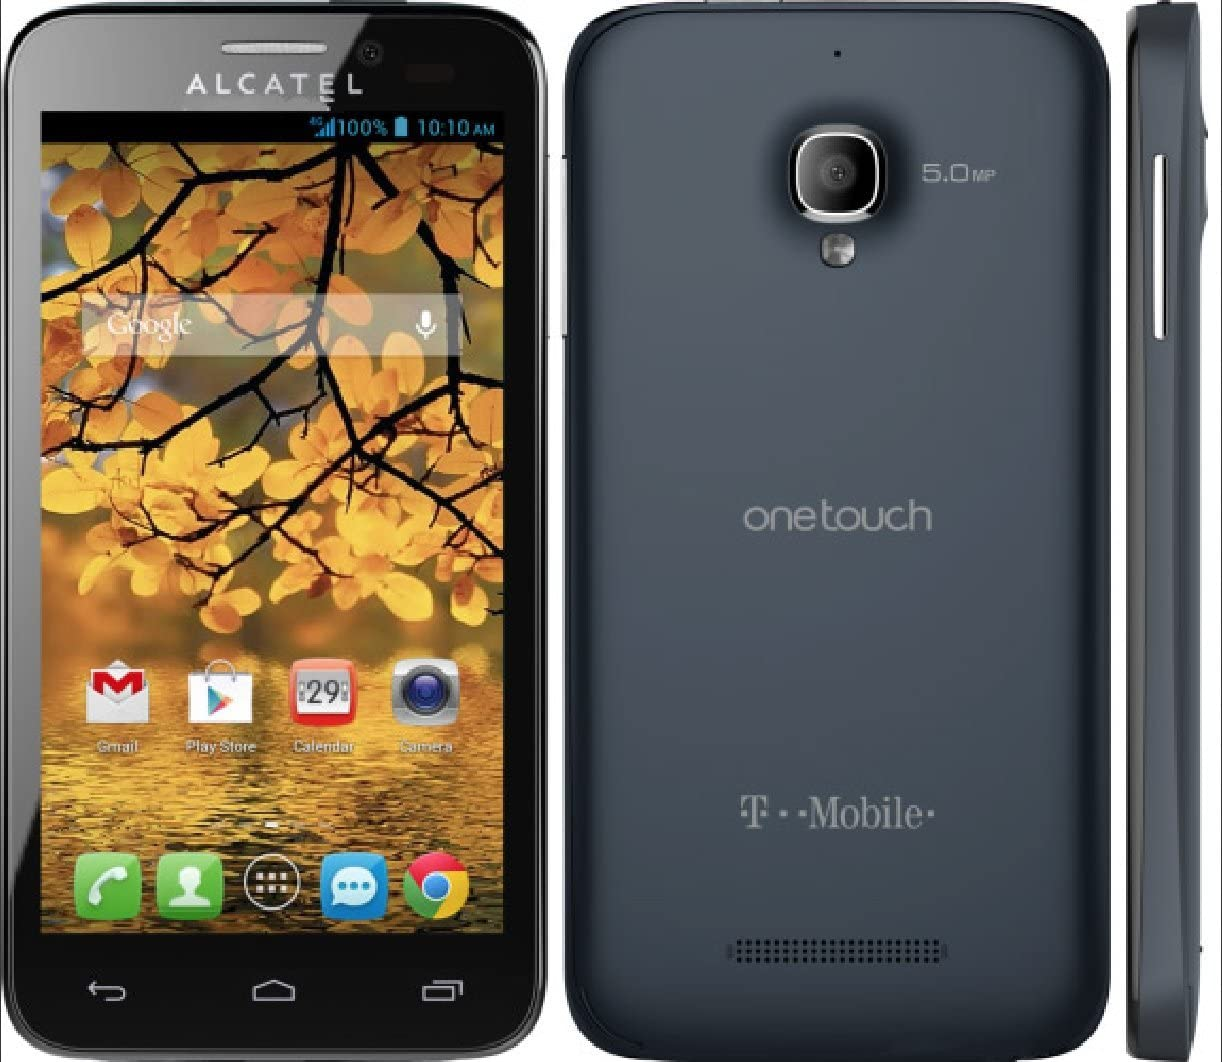 Alcatel One Touch Fierce 4G Android Smartphone Unlocked - Use With Any SIM - Slate 71itmXrUb8LSL1222_